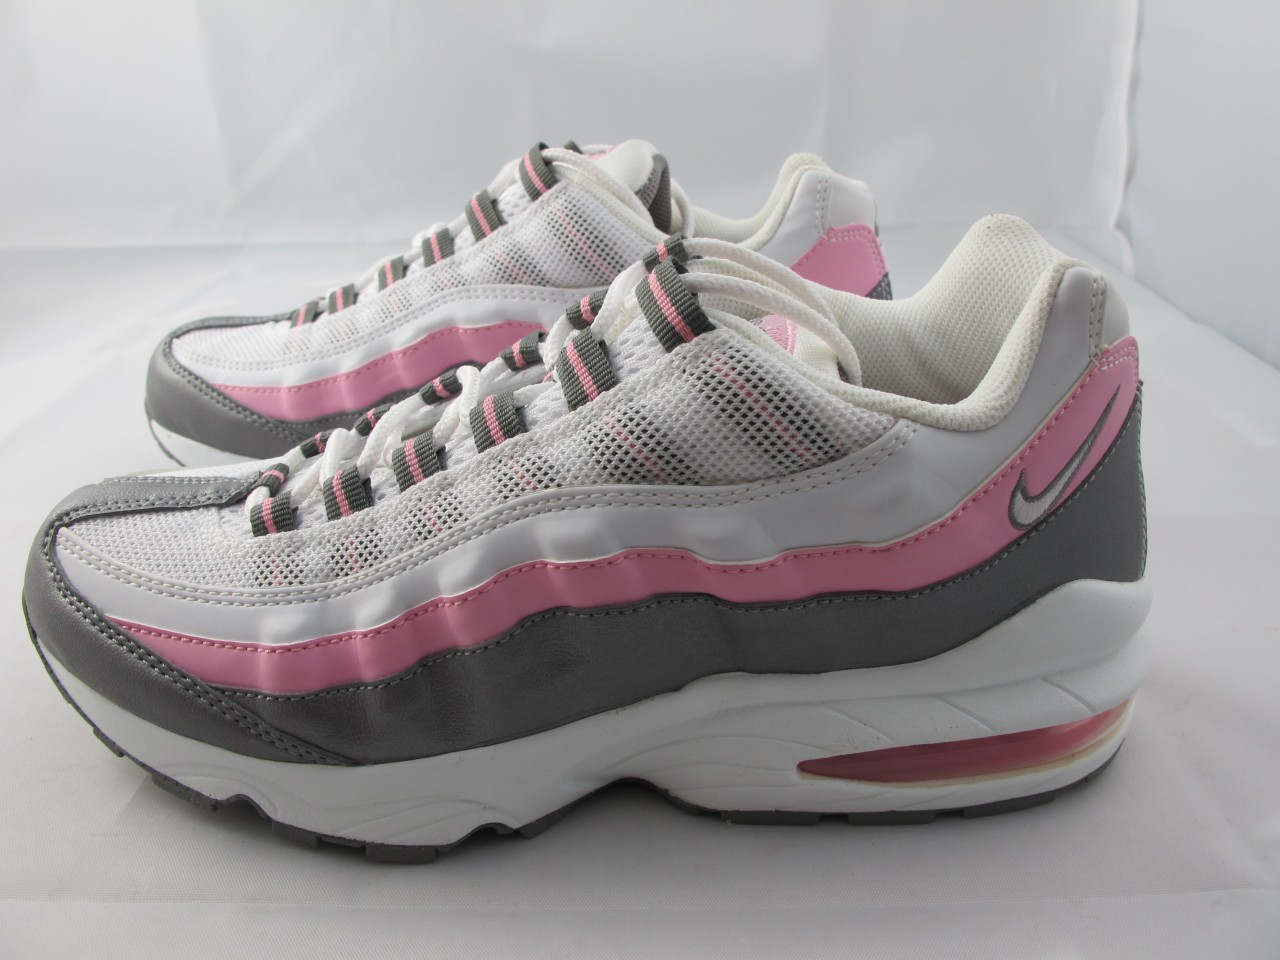 new zealand air max 95 blanco junior 386d0 219c9